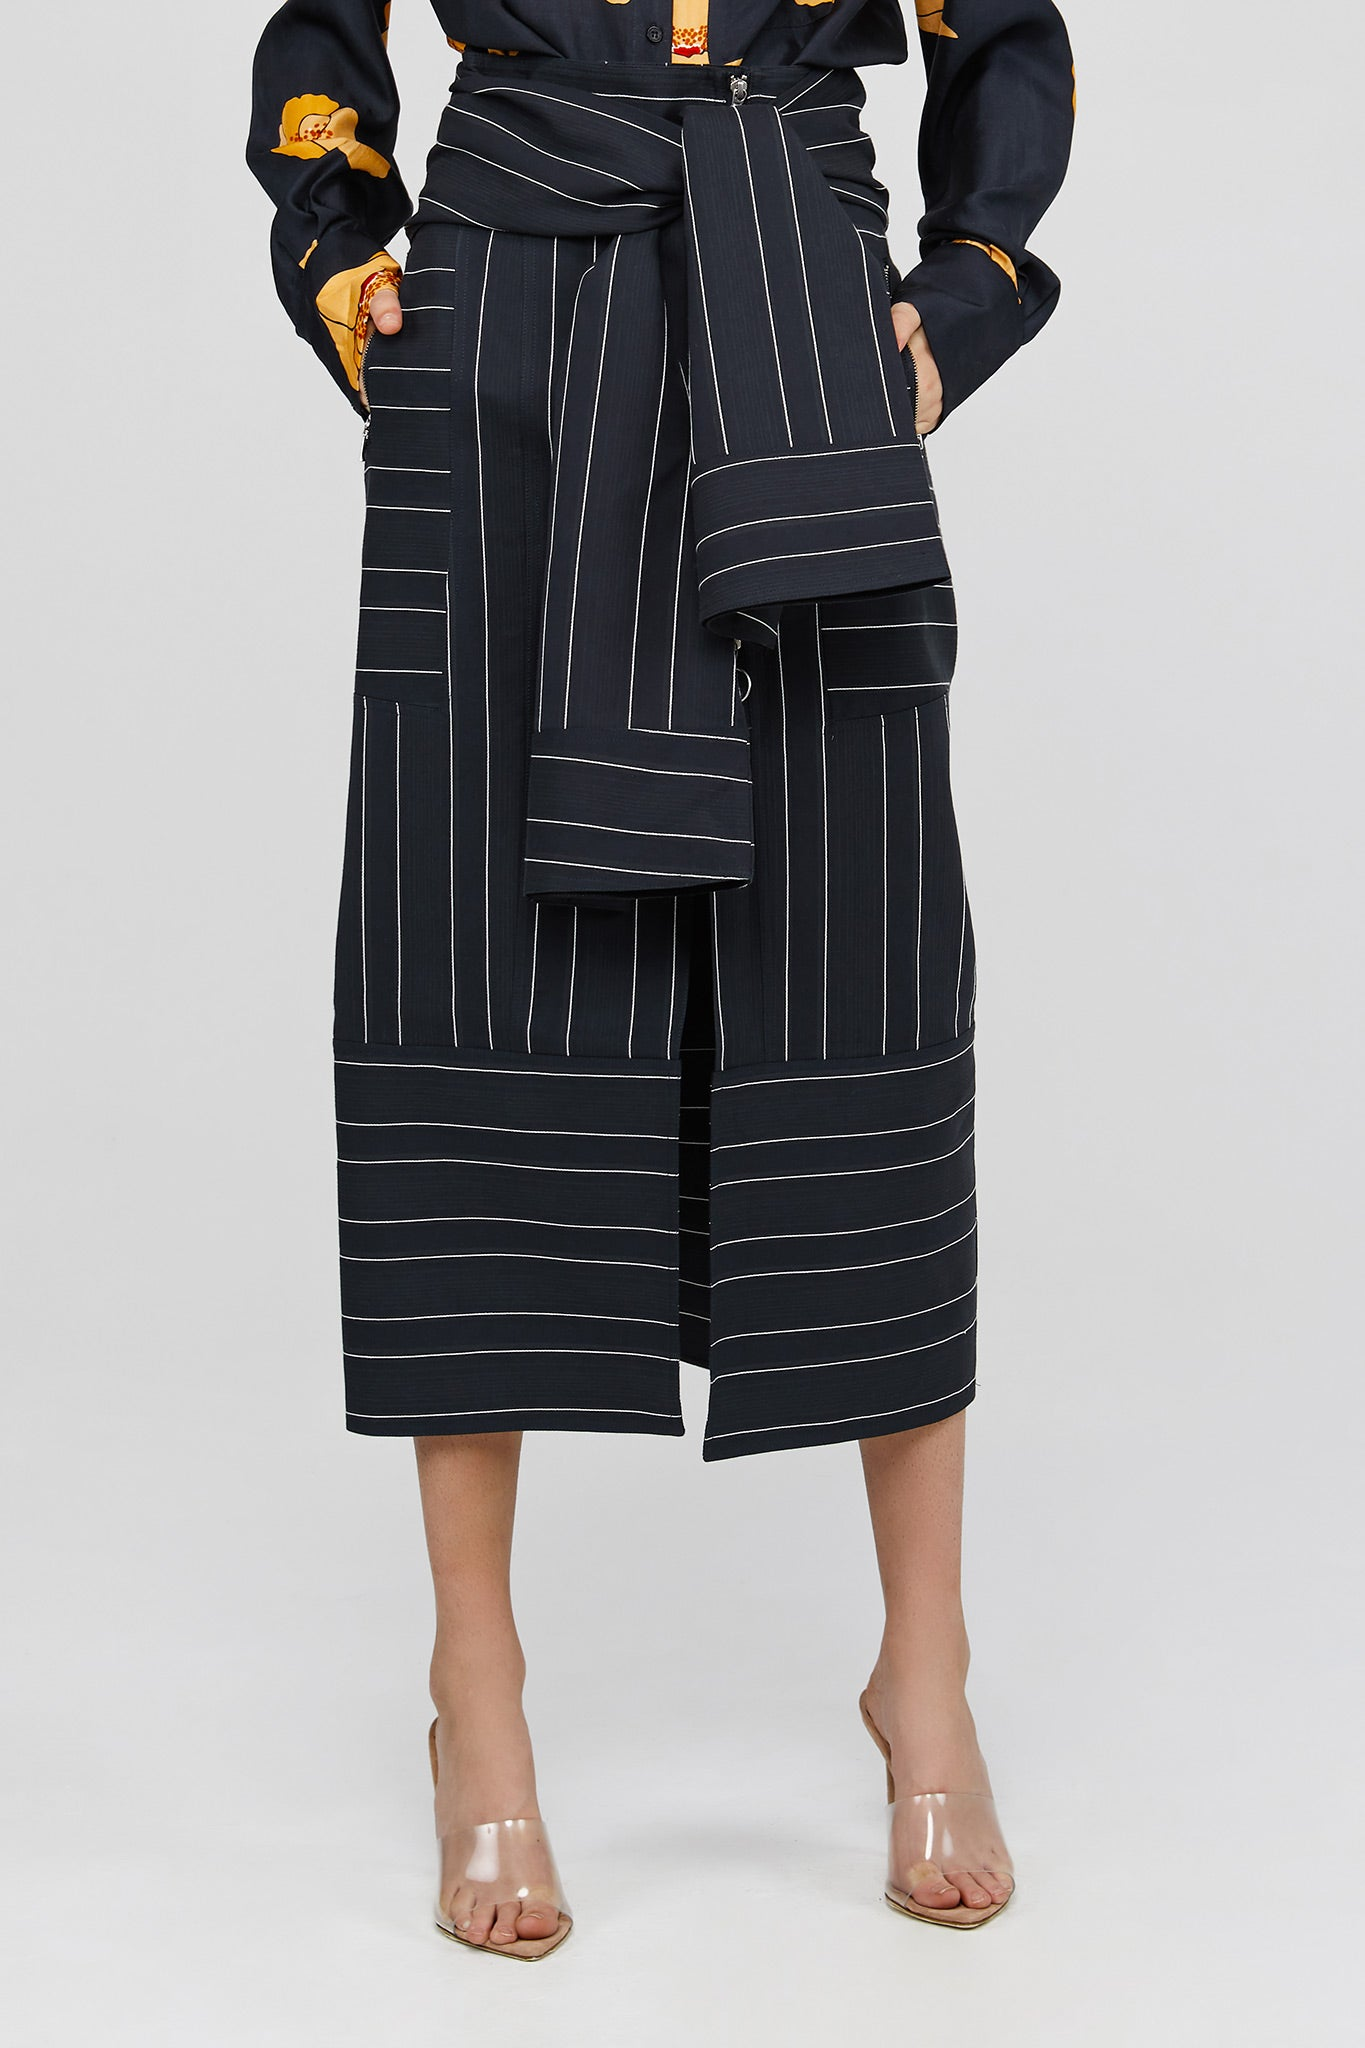 Ink Acler Ladies Midi Panel Striped Skirt with Front Drape